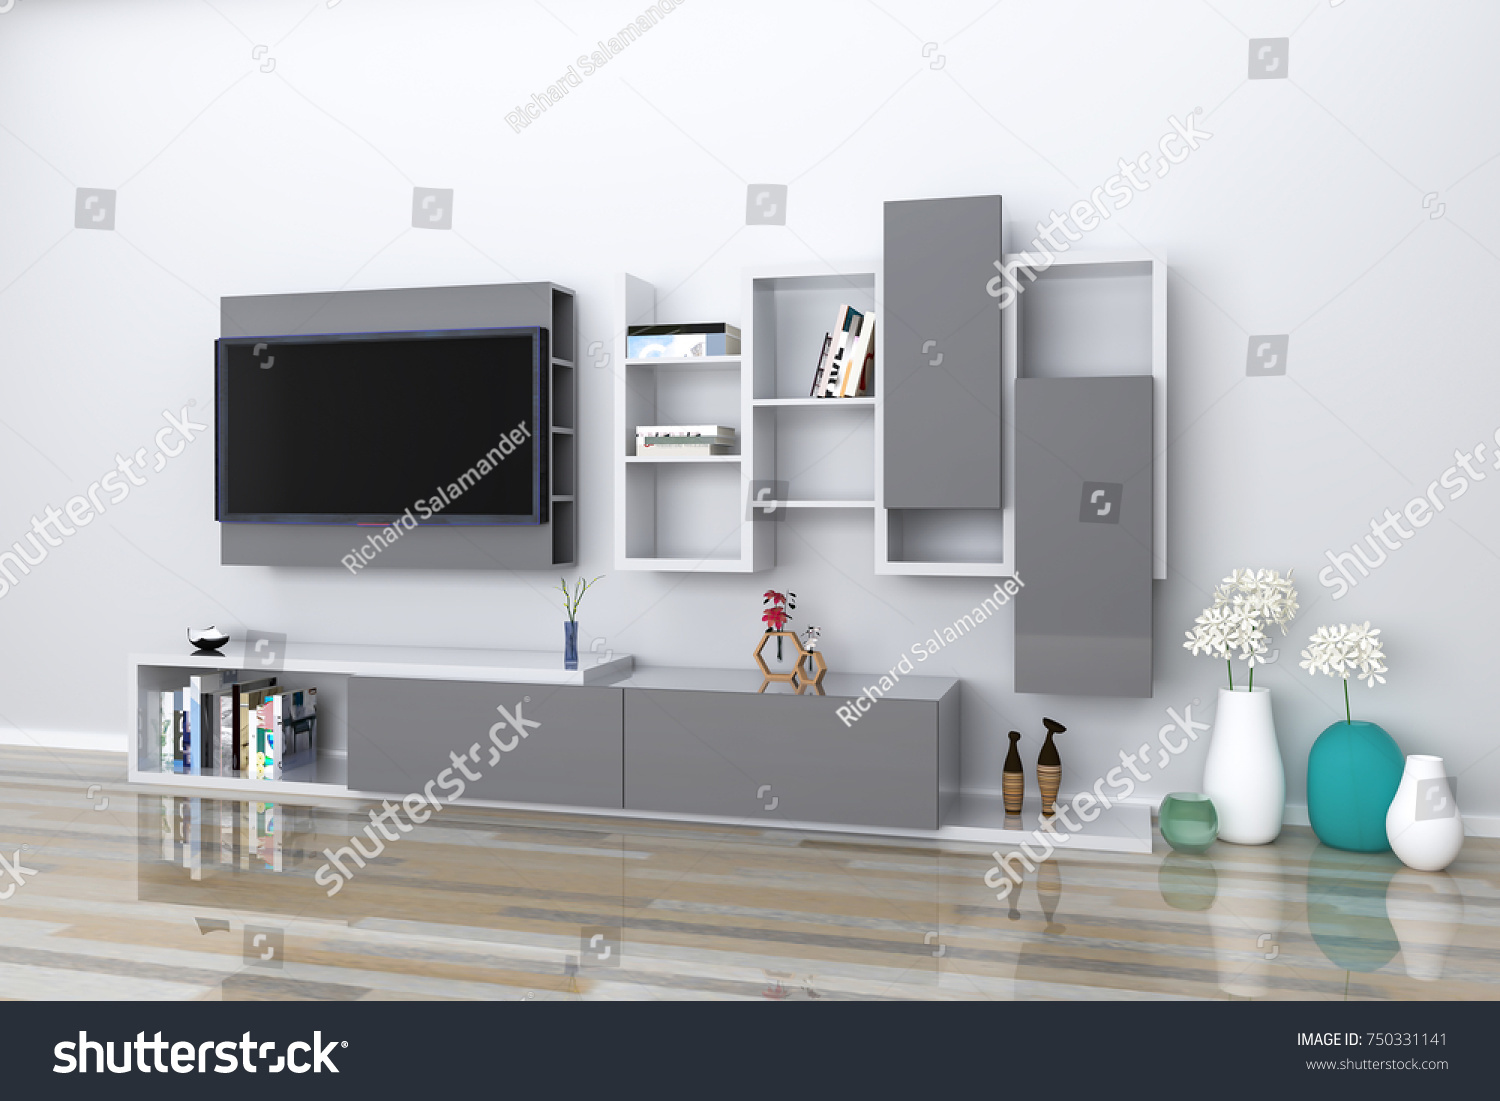 Modern furniture design tv stand and entertainment center with decorations glossy materials home interior design software programs project management